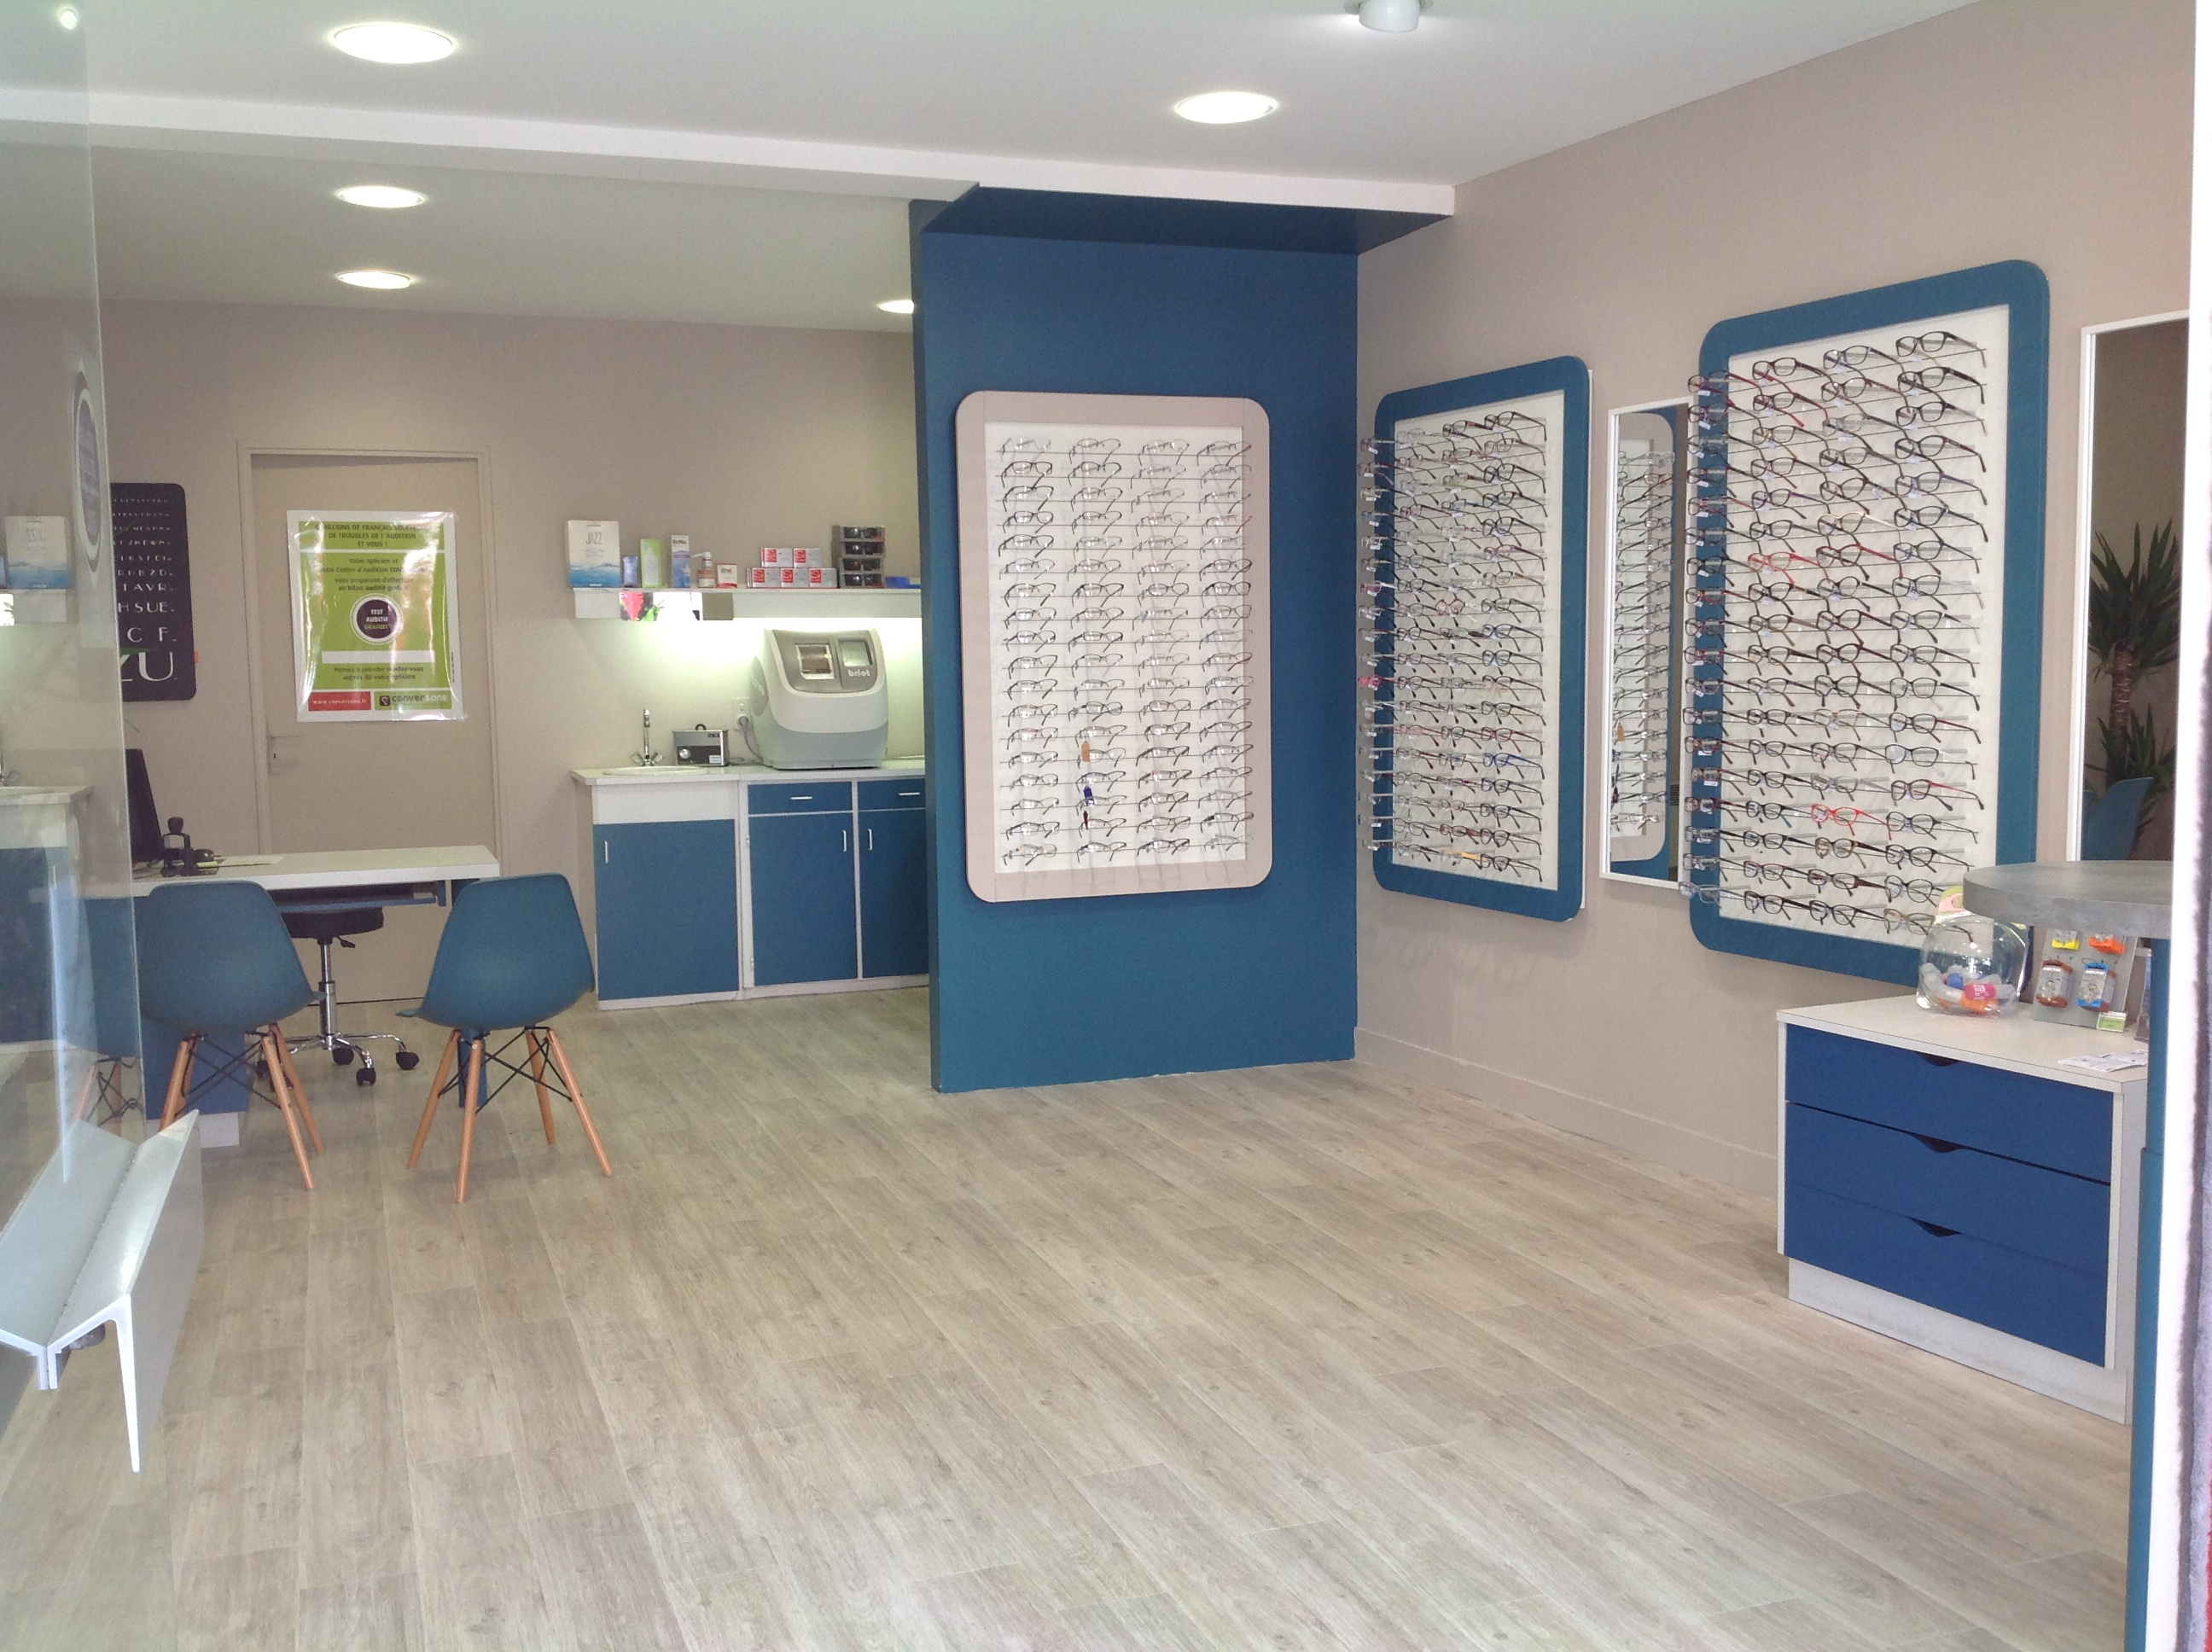 Opticien proposant la marque MAD IN ITALY : ALLONNES OPTIC, 61 rue PIERRE CURIE, 72700 Allonnes